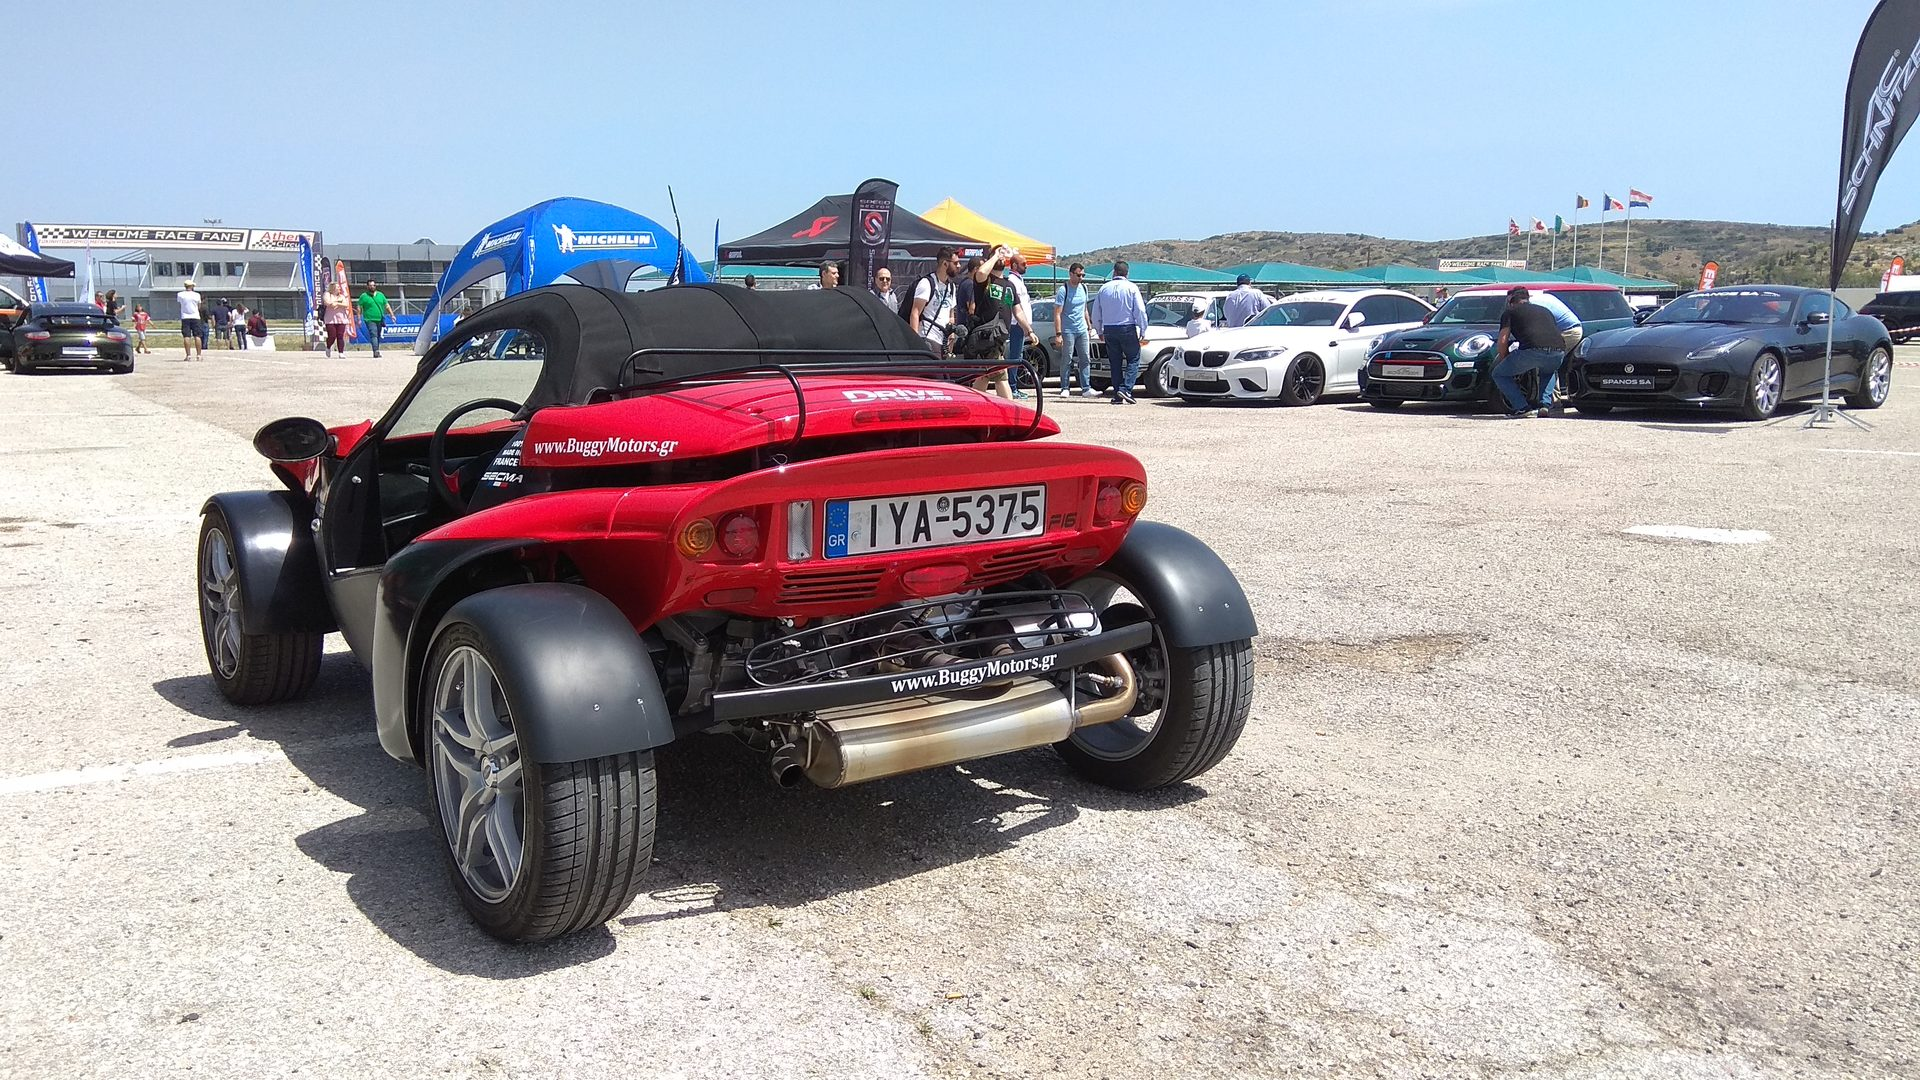 Secma F16 Roadster - Athens Circuit - SpeedSector Racetrack Experience